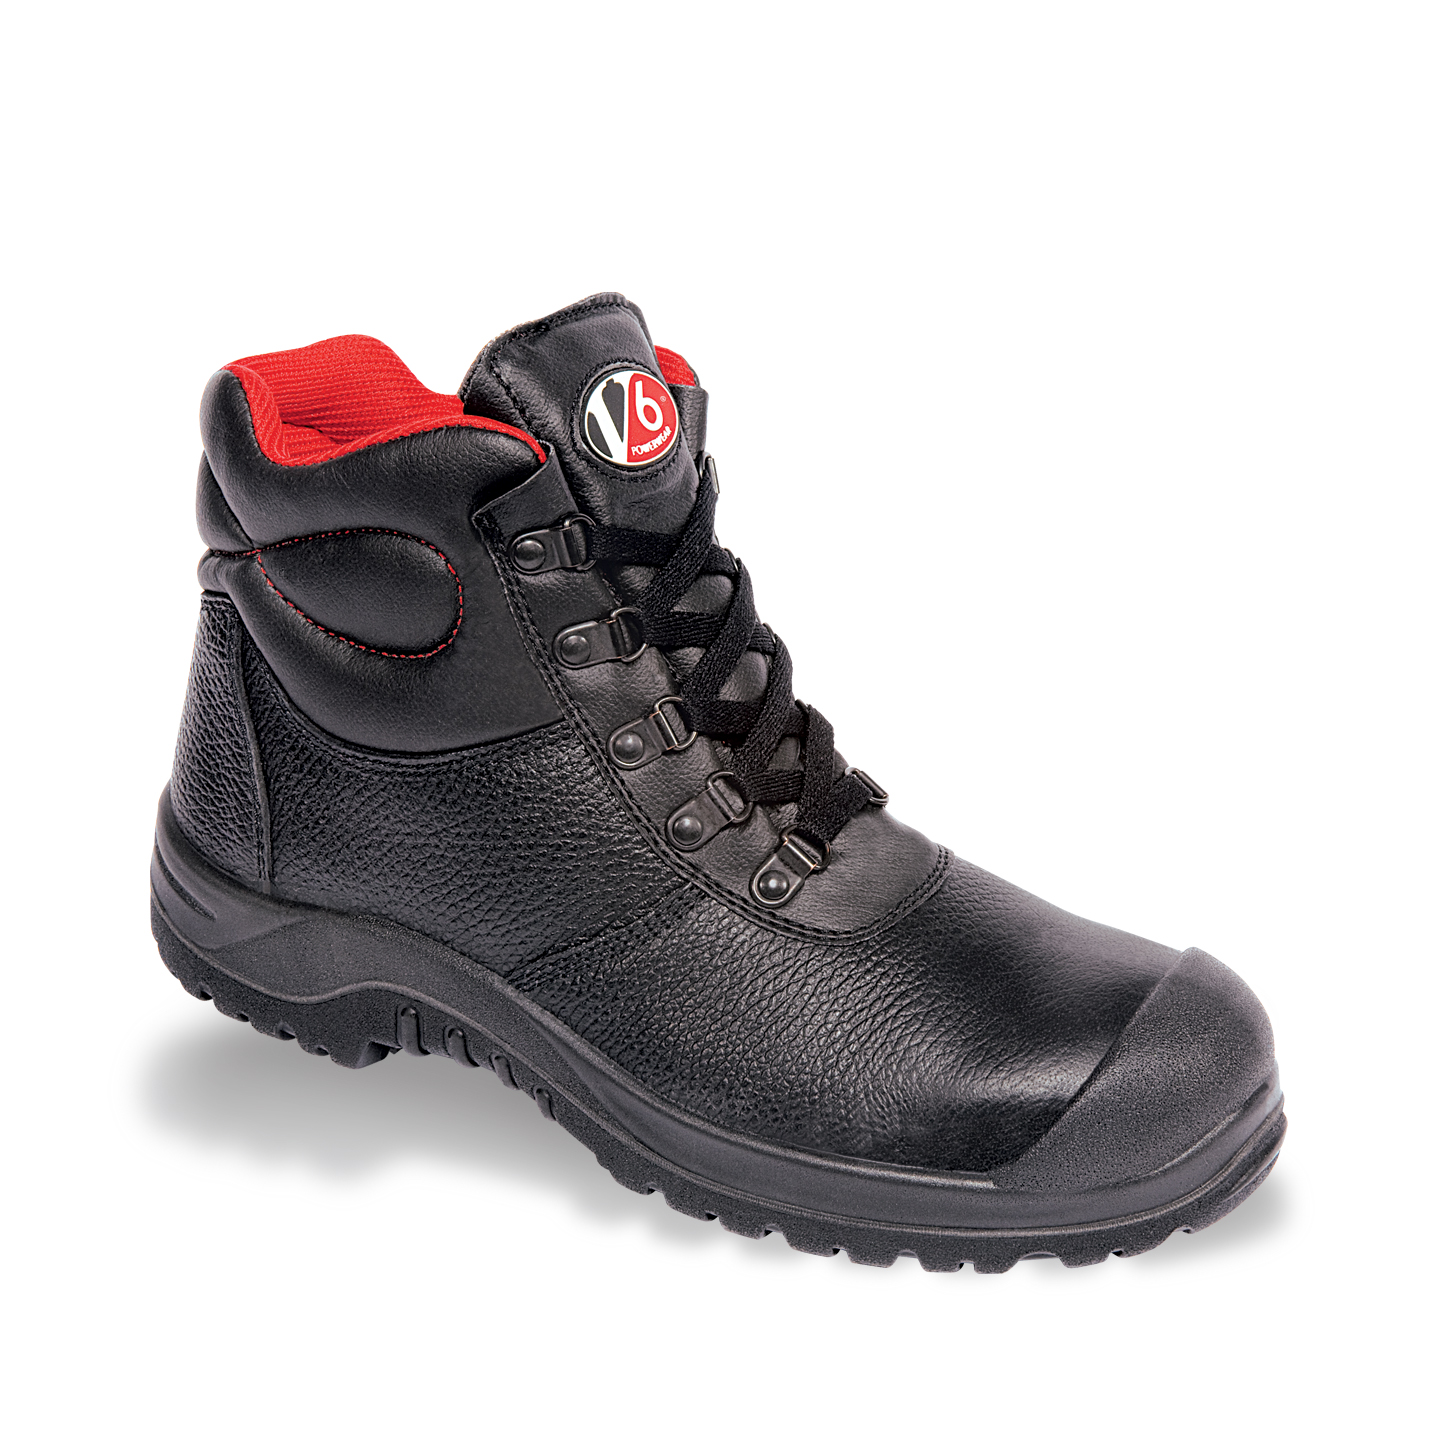 V12 Rhino Safety Work Boots Black V6863 Scuff Cap | The Safety Shack